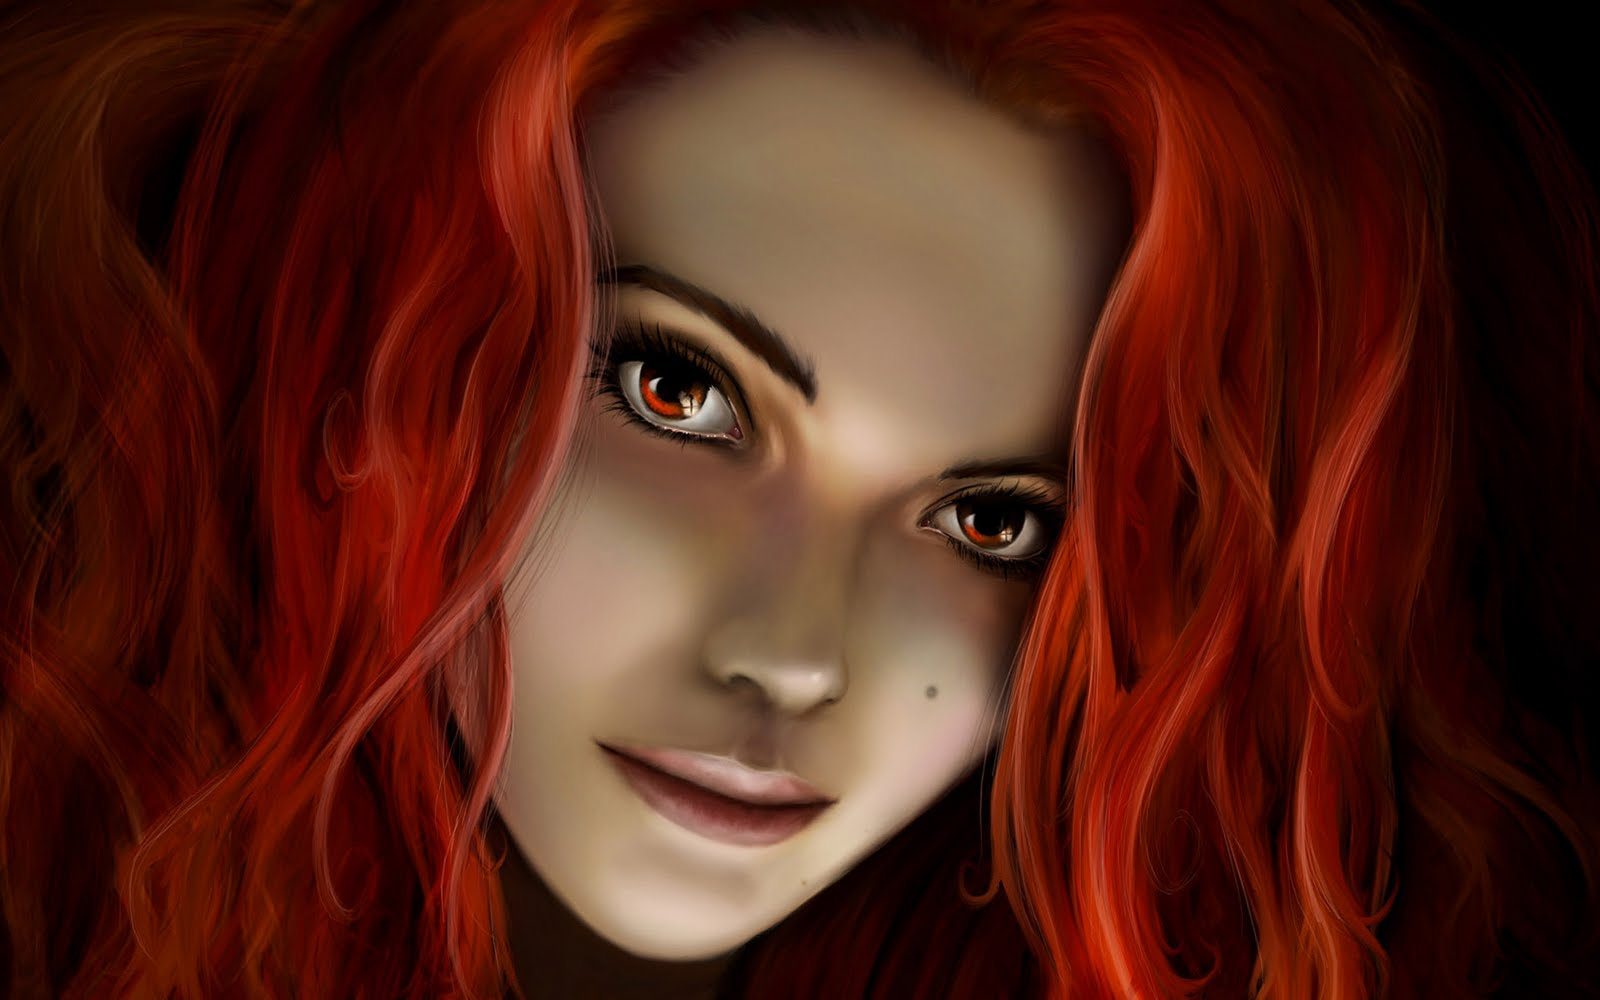 Image fantasy girl with red hair wallpaperg naruto profile fantasy girl with red hair wallpaperg voltagebd Images